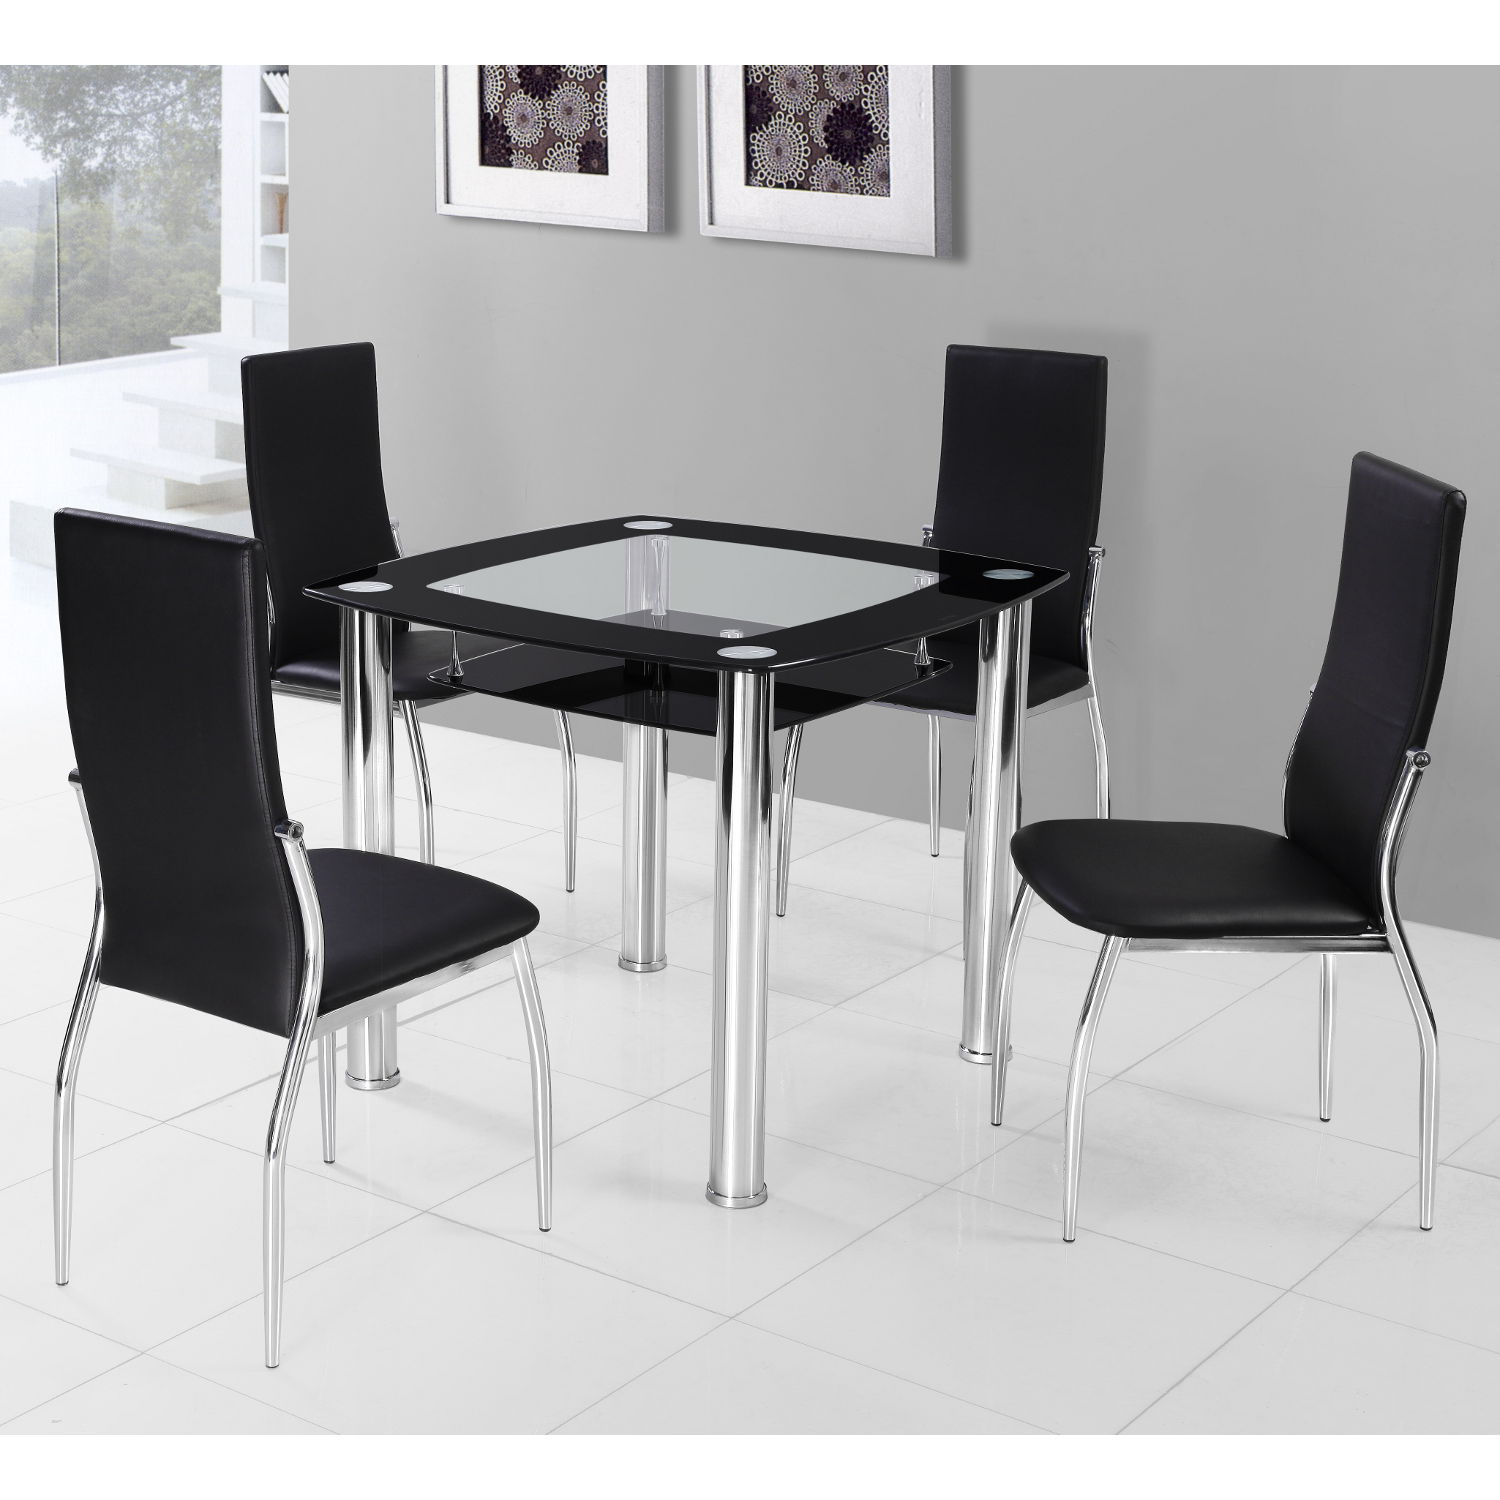 ... Glass Kitchen Tables Pertaining Source · Square Dining Tables For 4  Glacier Square 4 Post Dining Table